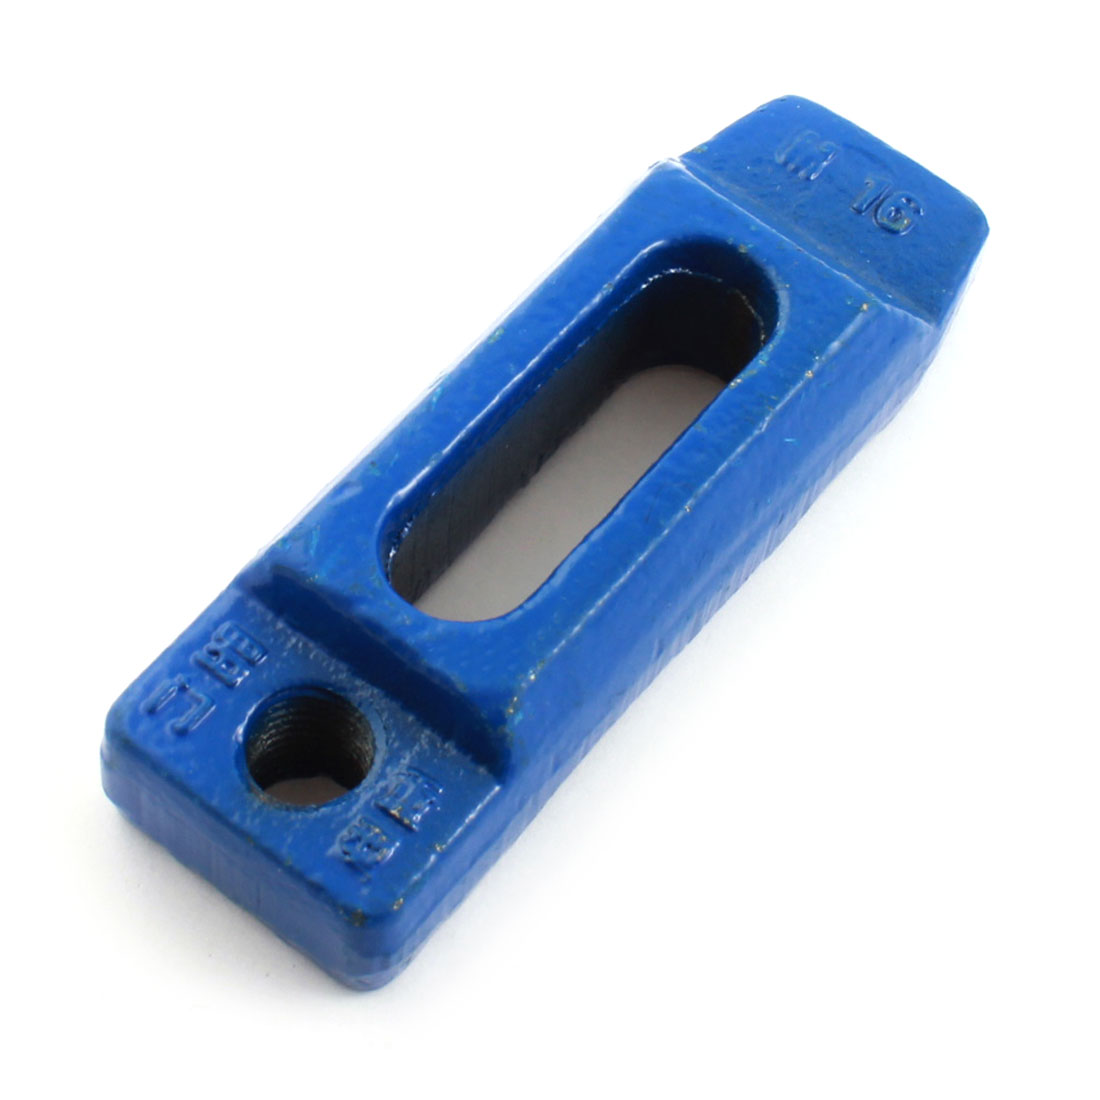 Blue Cast Iron Mould Tapped End Clamp Strap 136mm Long for M16 16mm Bolt Stud